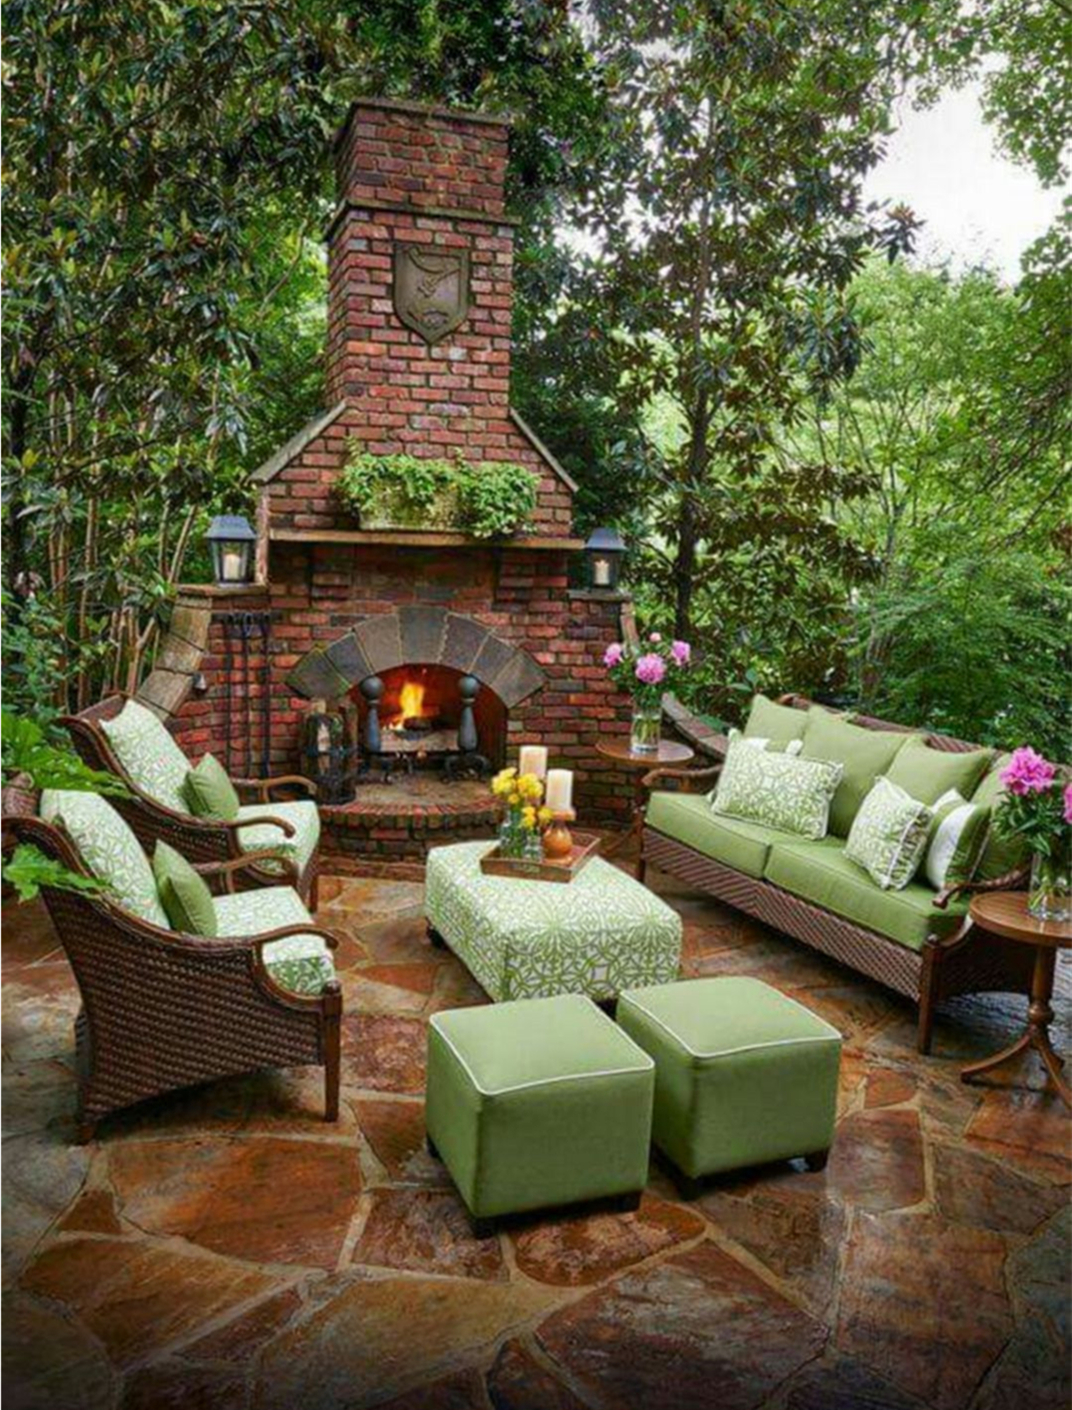 Garden Decoration With Rattan Sofa And Chair for an Elegant Look.